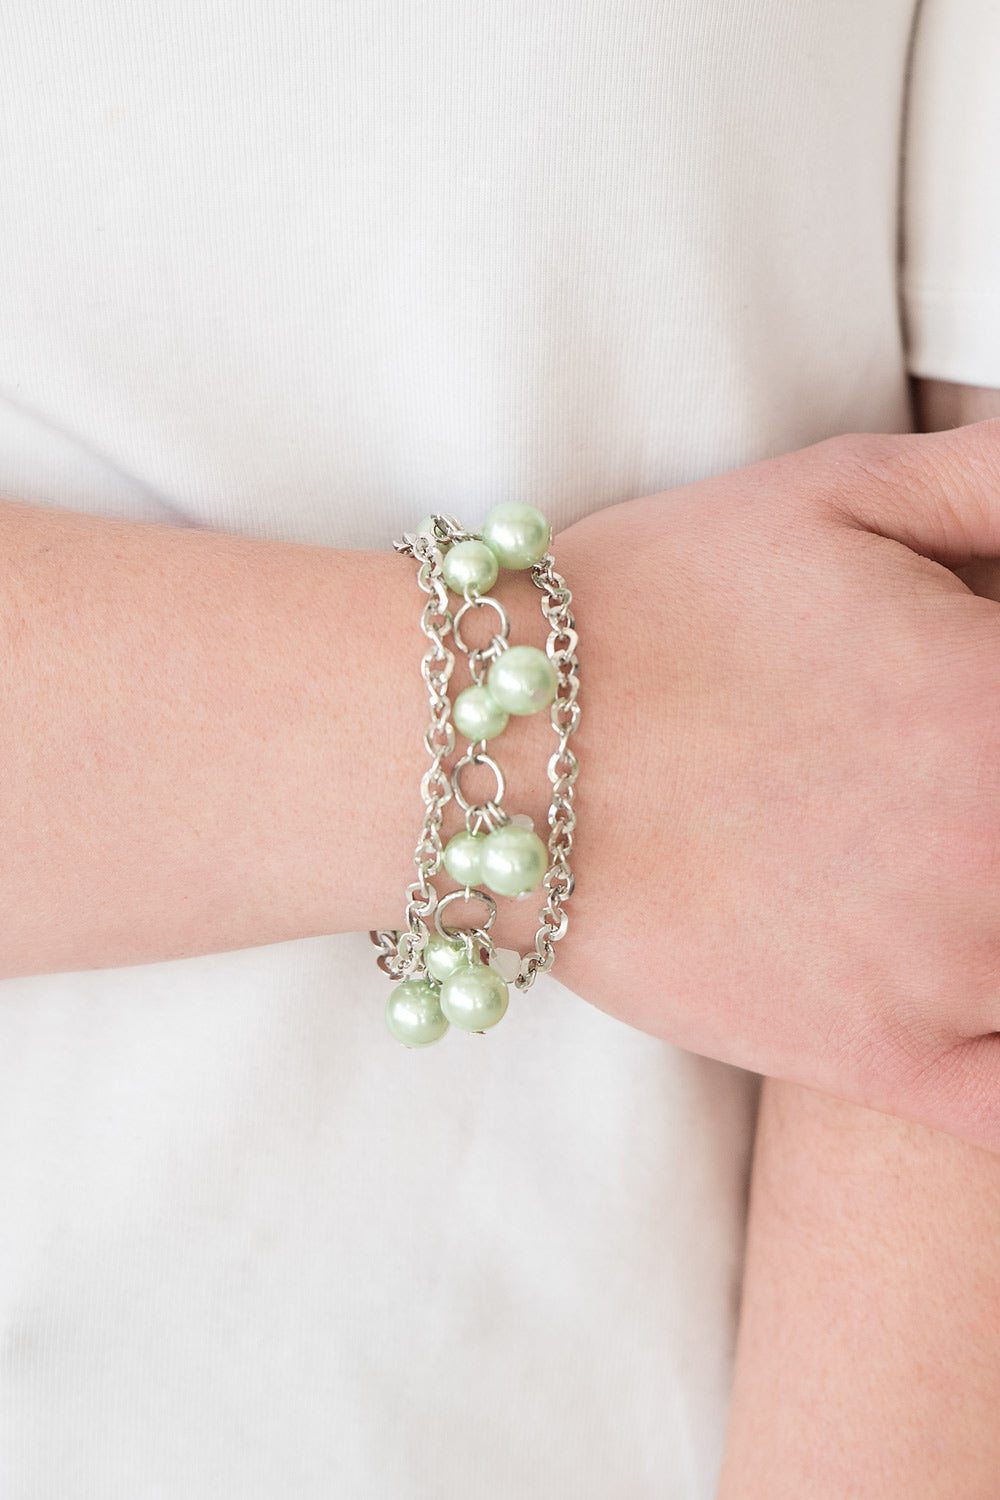 Manhattan Musical - Green Paparazzi Bracelet - Pink Dragon Jewels